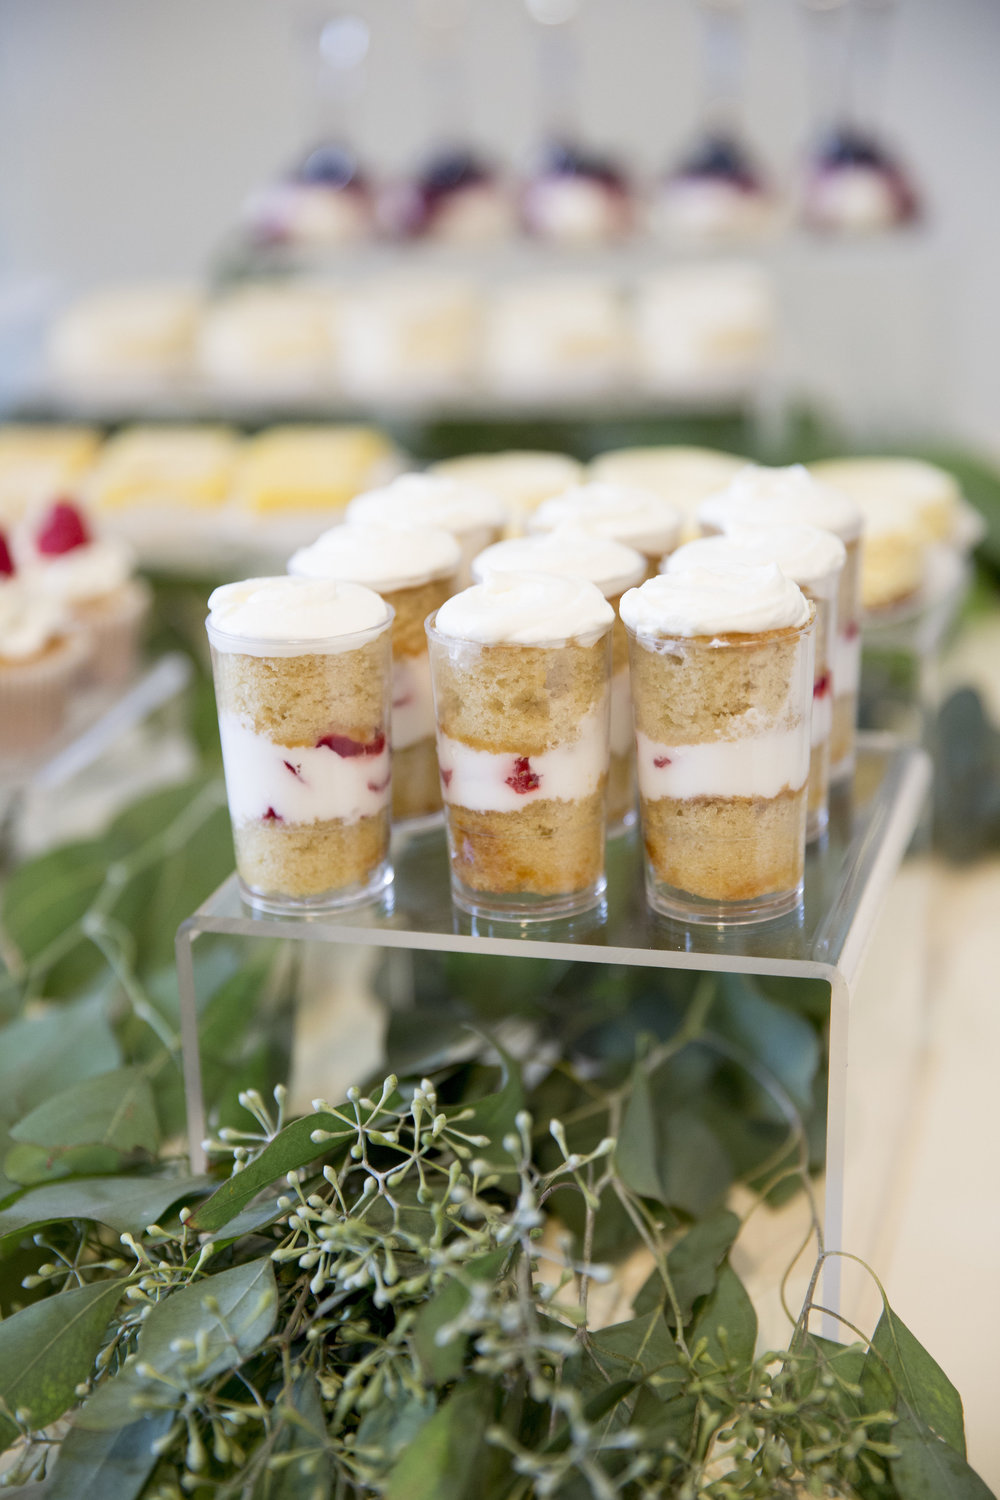 www.santabarbaraweddingstyle | dessert buffet | Dessert ideas | strawberry shortcake | lele patisserie | Kristen Beinke Photography